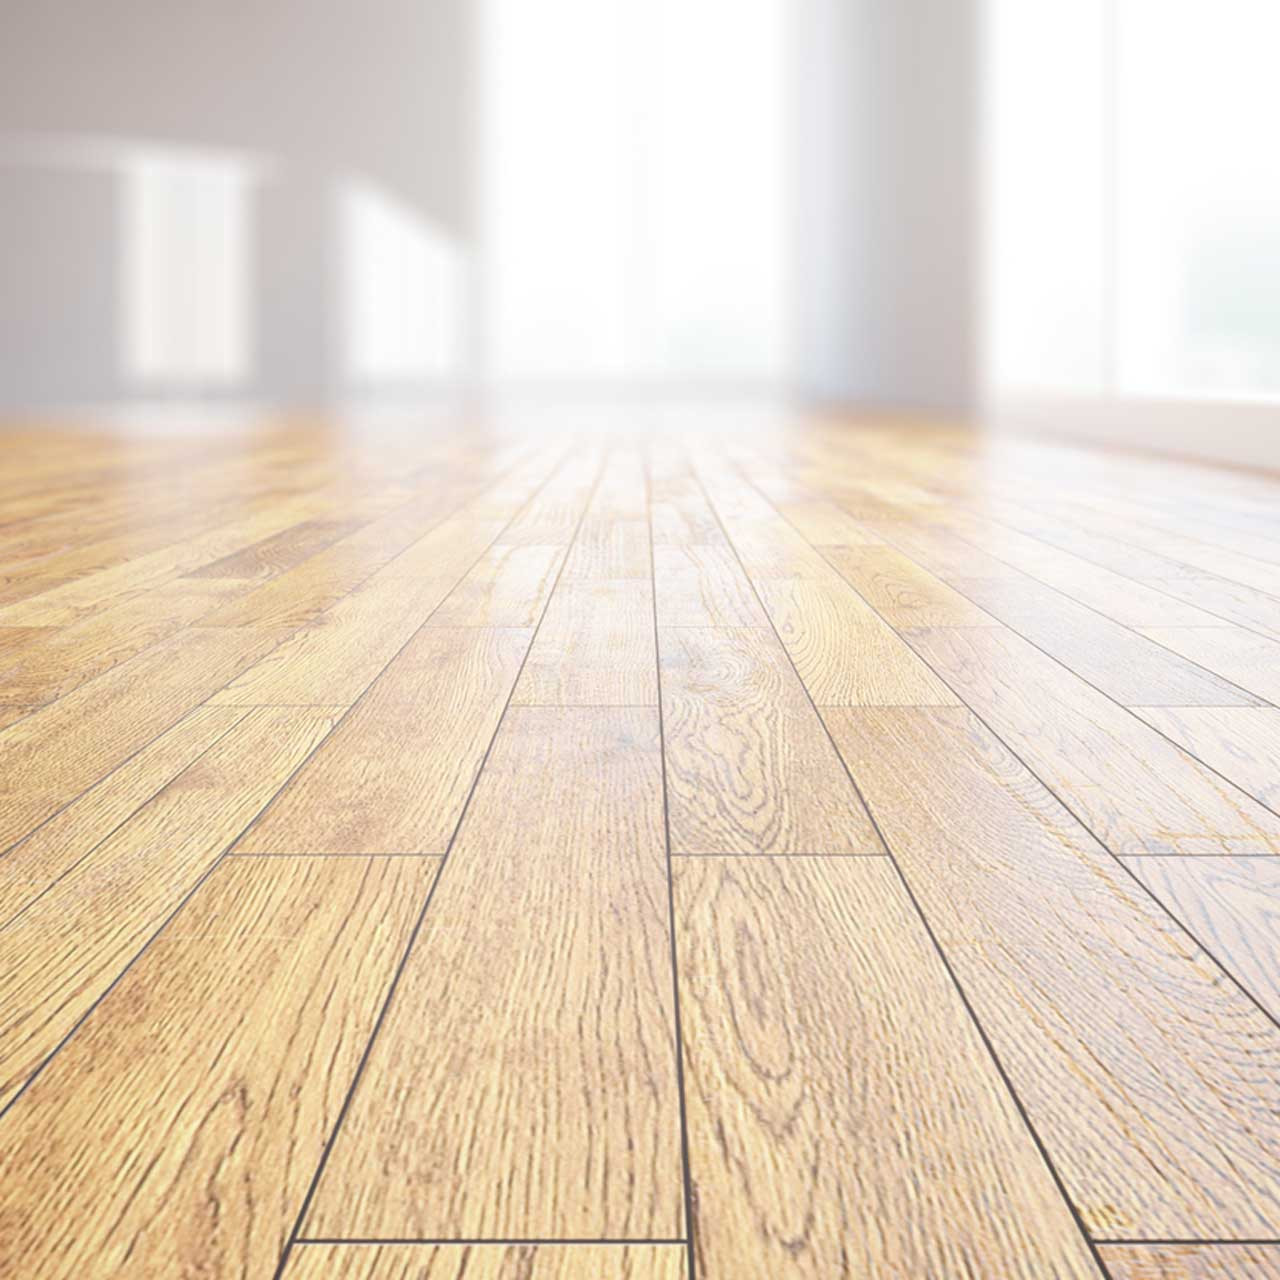 26 Nice Hardwood Flooring Ingersoll Ontario 2021 free download hardwood flooring ingersoll ontario of news blogs events and articles allergy standards ltd intended for chemicals in flooring